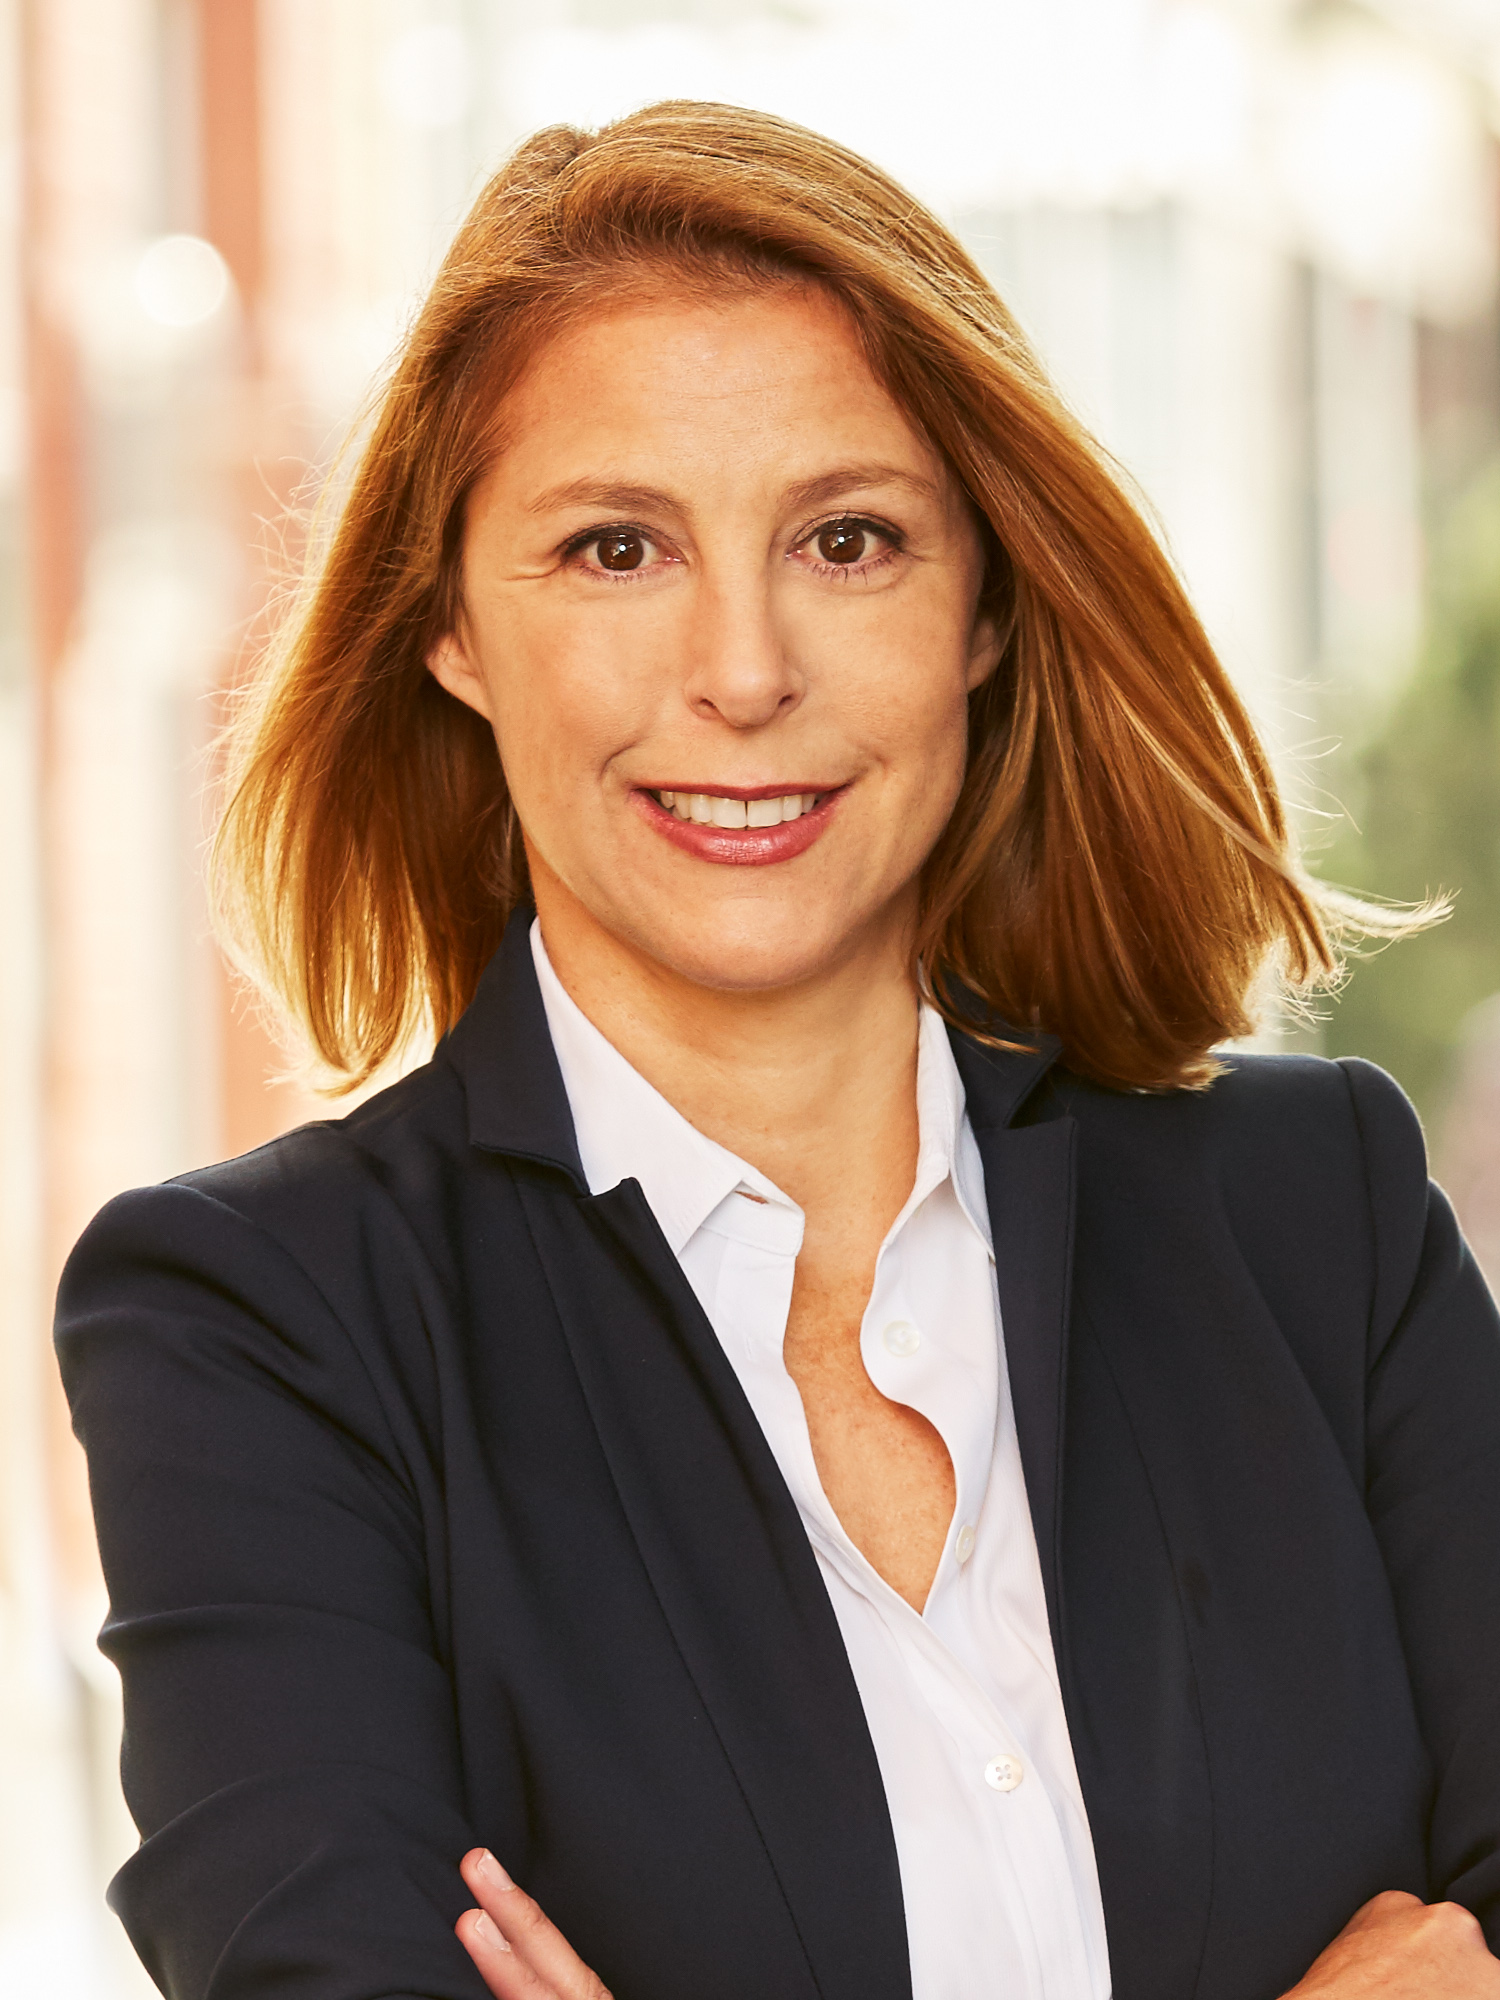 AnneMarie Tamis-Nasello, a top realtor in New York City for Corcoran, a real estate firm in East Side.